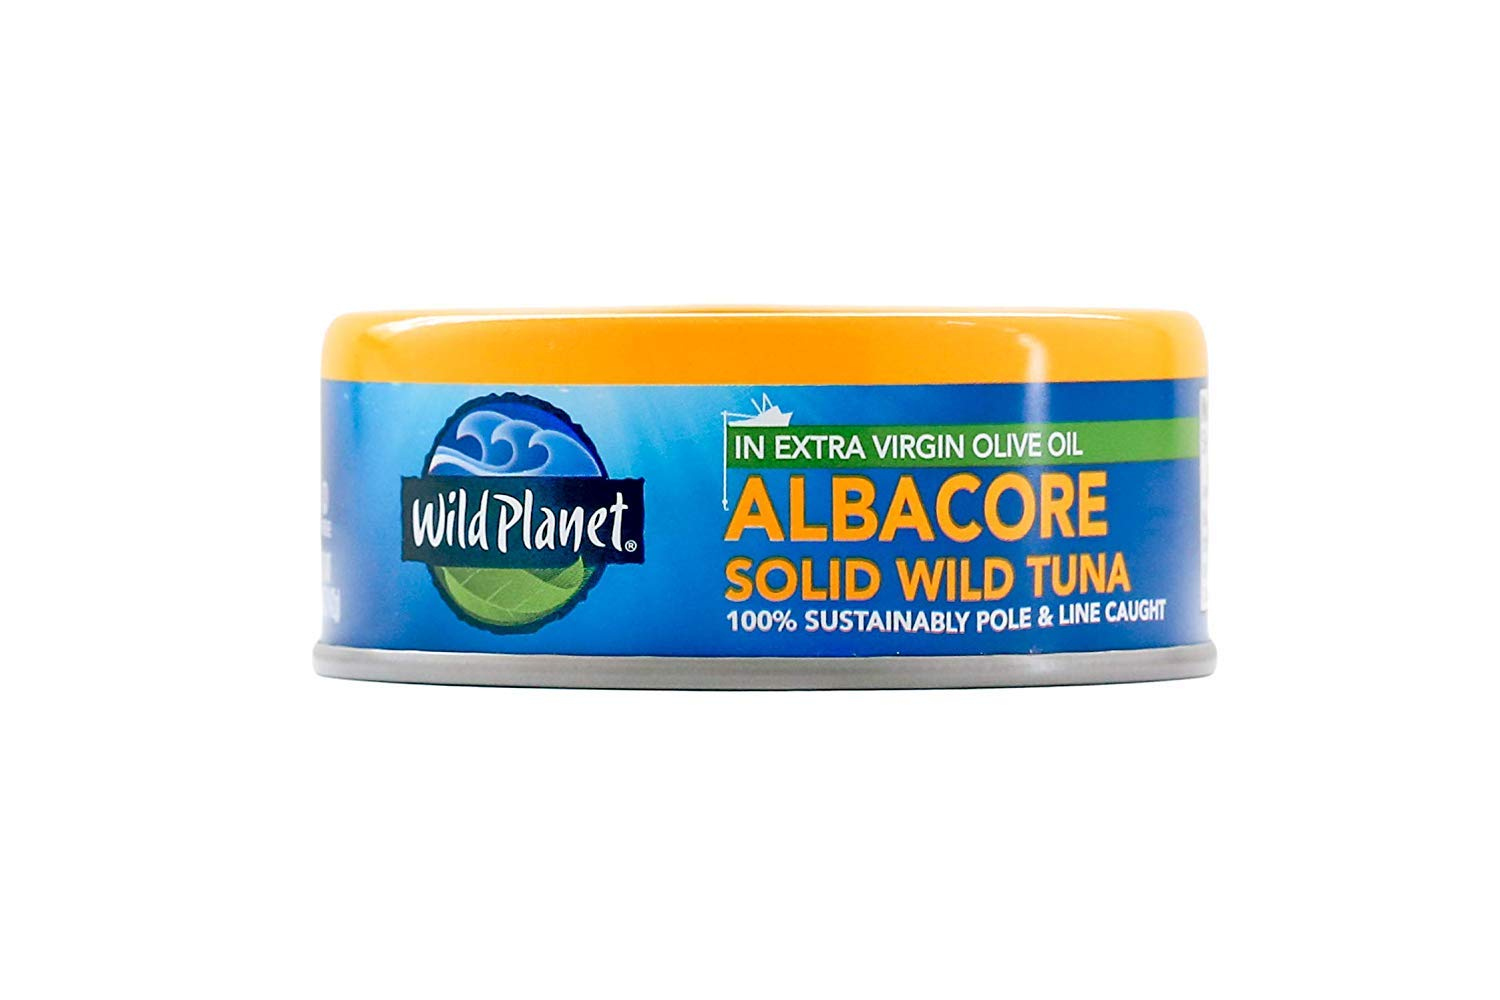 Wild Planet Albacore Wild Tuna in Extra Virgin Olive Oil – 5oz Can (Pack of 12)